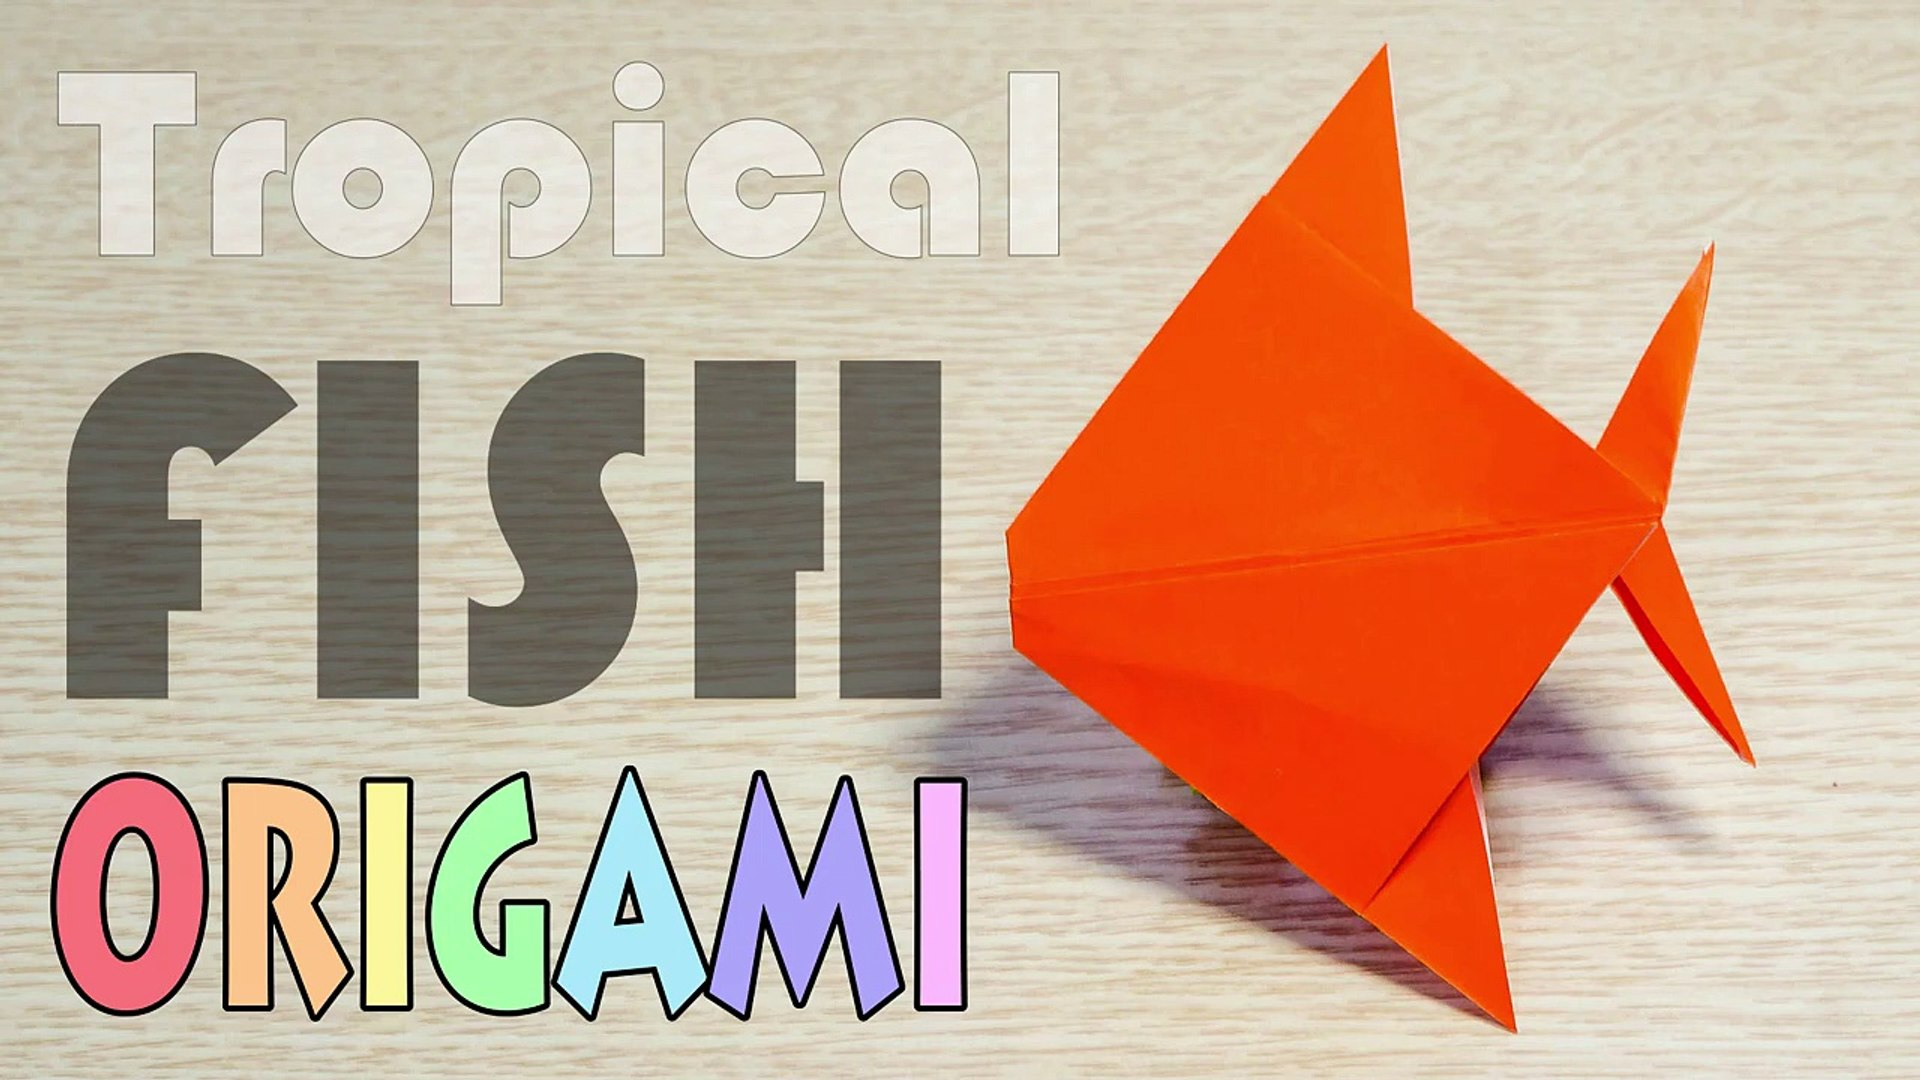 origami fish easy for kids - YouTube   1080x1920